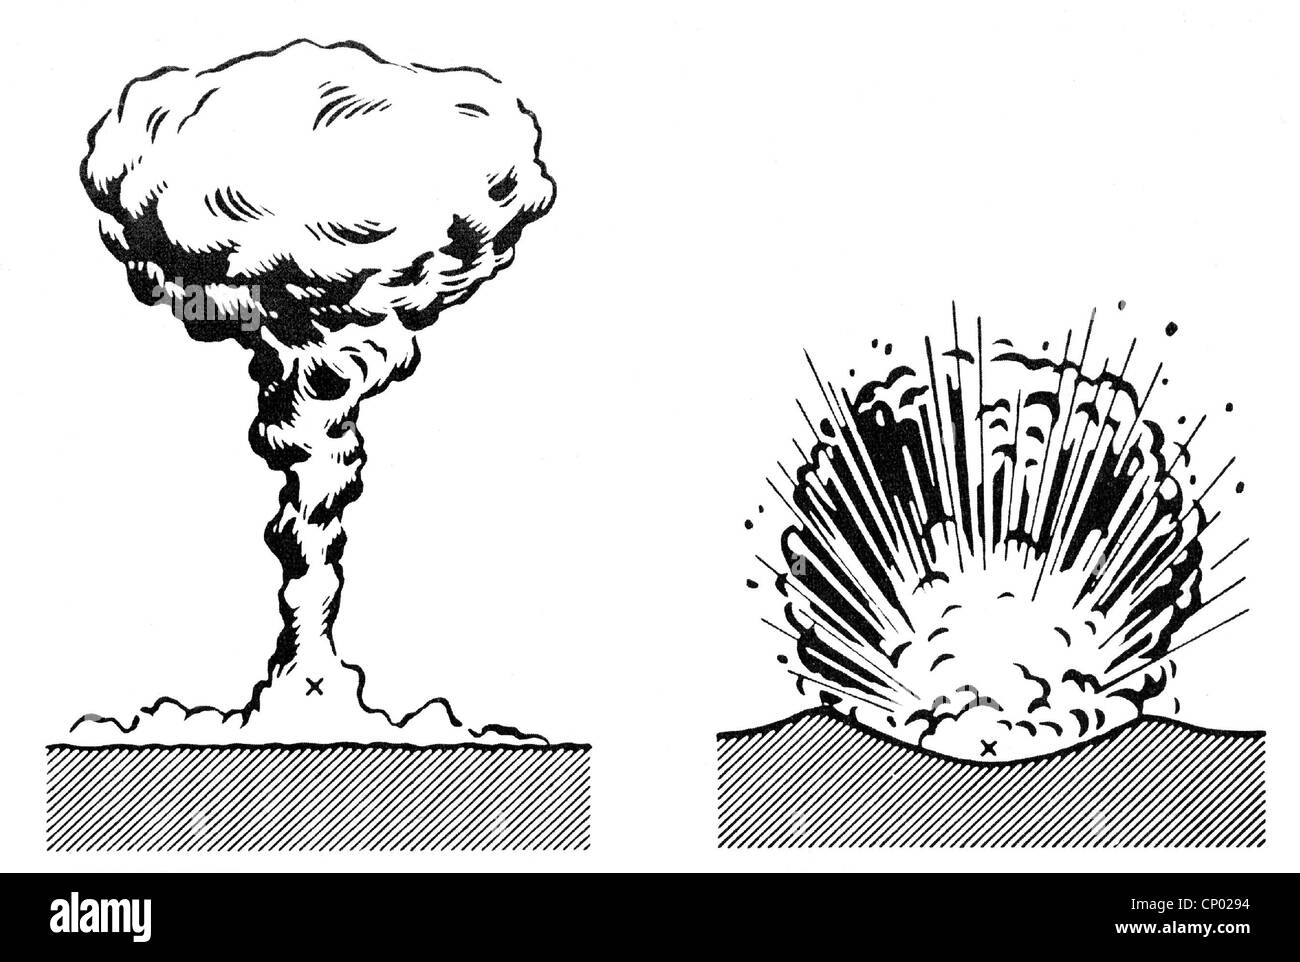 atom, protection, description of a  nuclear explosion, out of brochure 'Jeder hat eine Chance' (Everyone - Stock Image